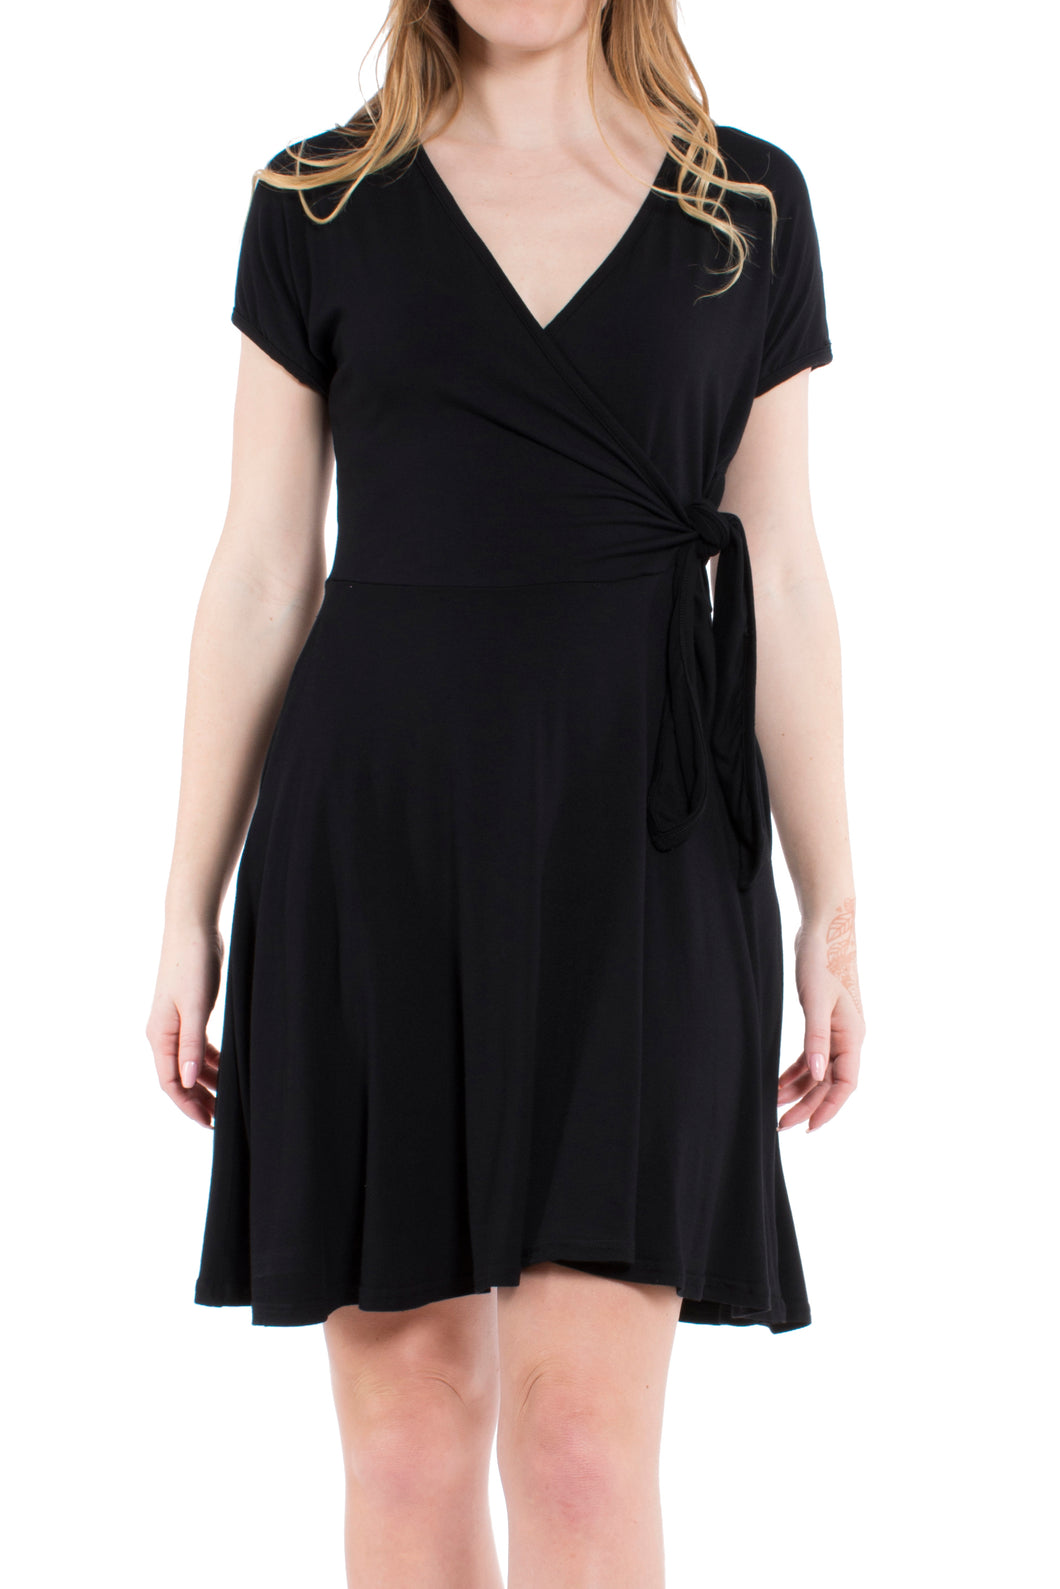 Surplice Wrap Dress - Black